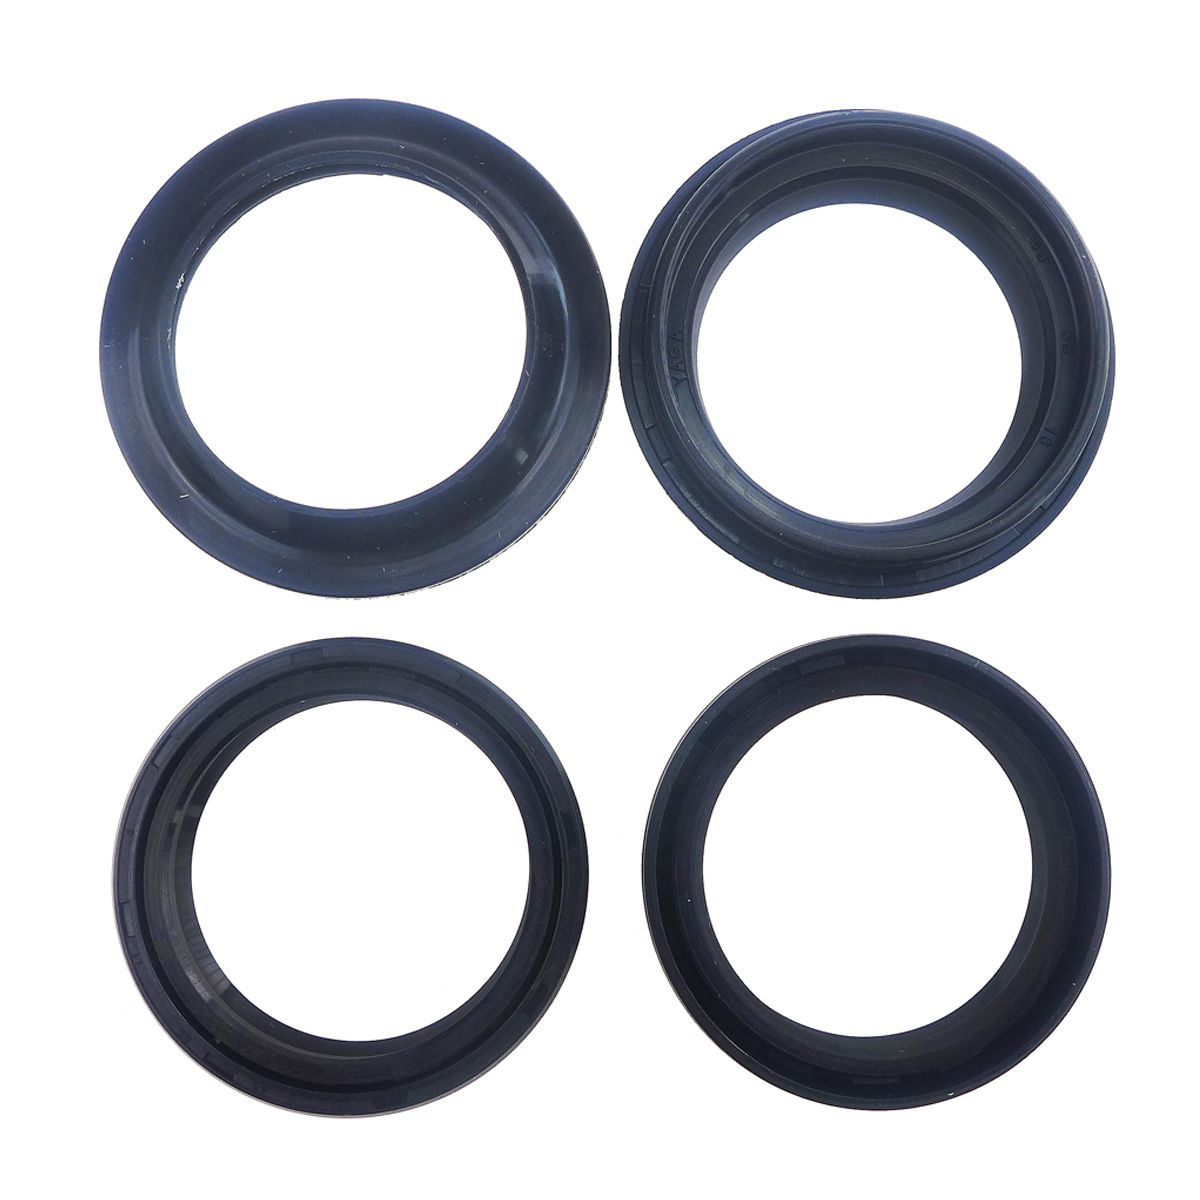 Kawasaki ZX10R 2015 Replacement Fork Oil /& Dust Seal Kit